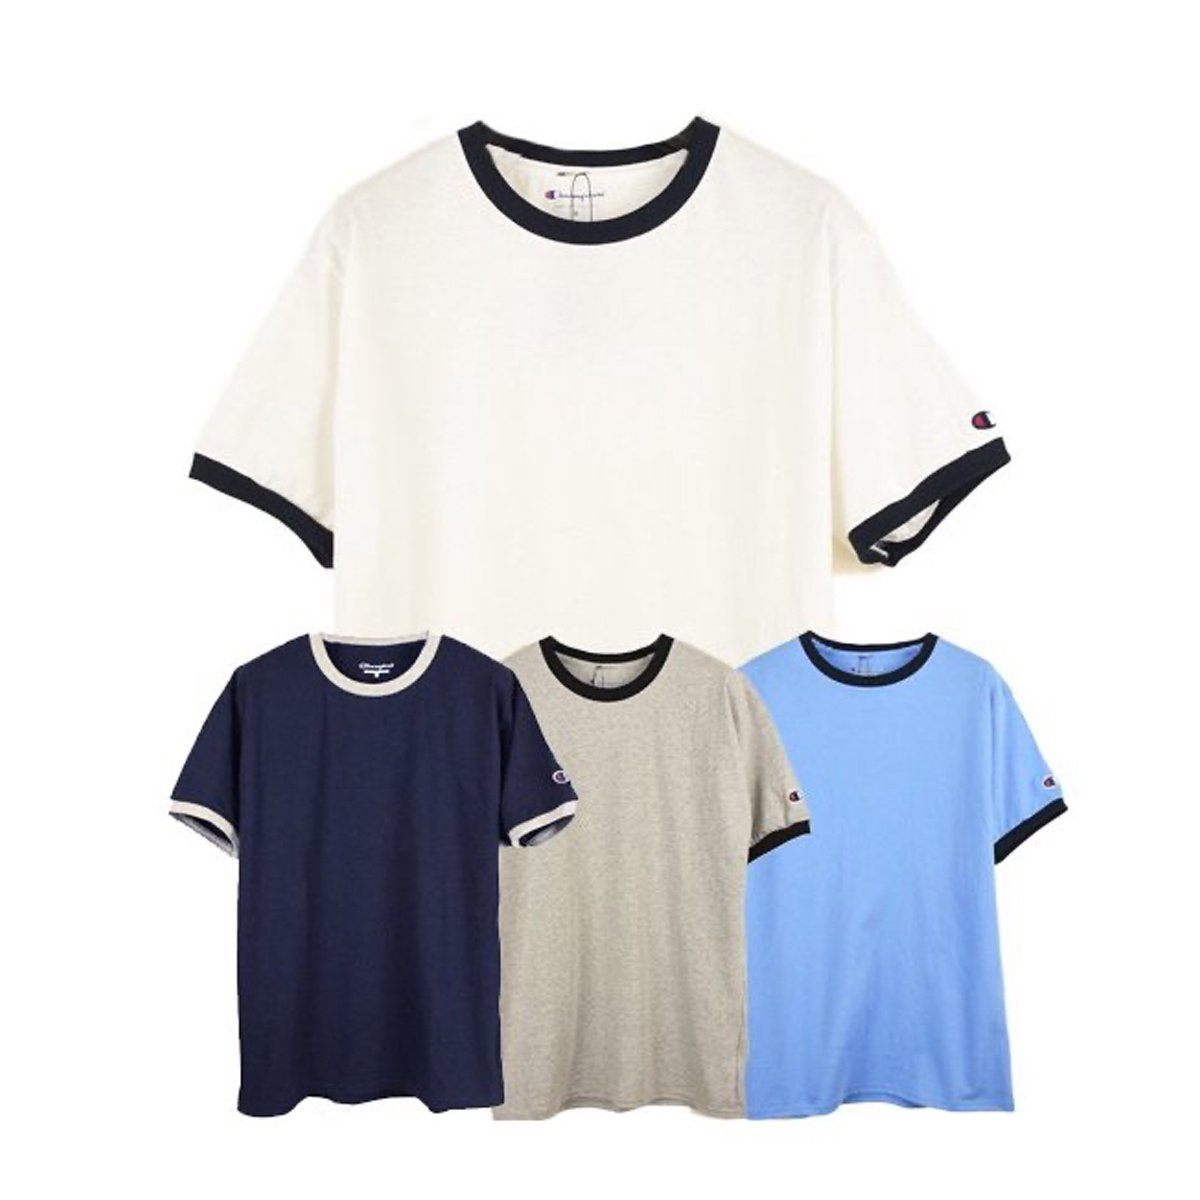 【Champion】5.2 OZ Trim S/S Tee<img class='new_mark_img2' src='https://img.shop-pro.jp/img/new/icons8.gif' style='border:none;display:inline;margin:0px;padding:0px;width:auto;' />